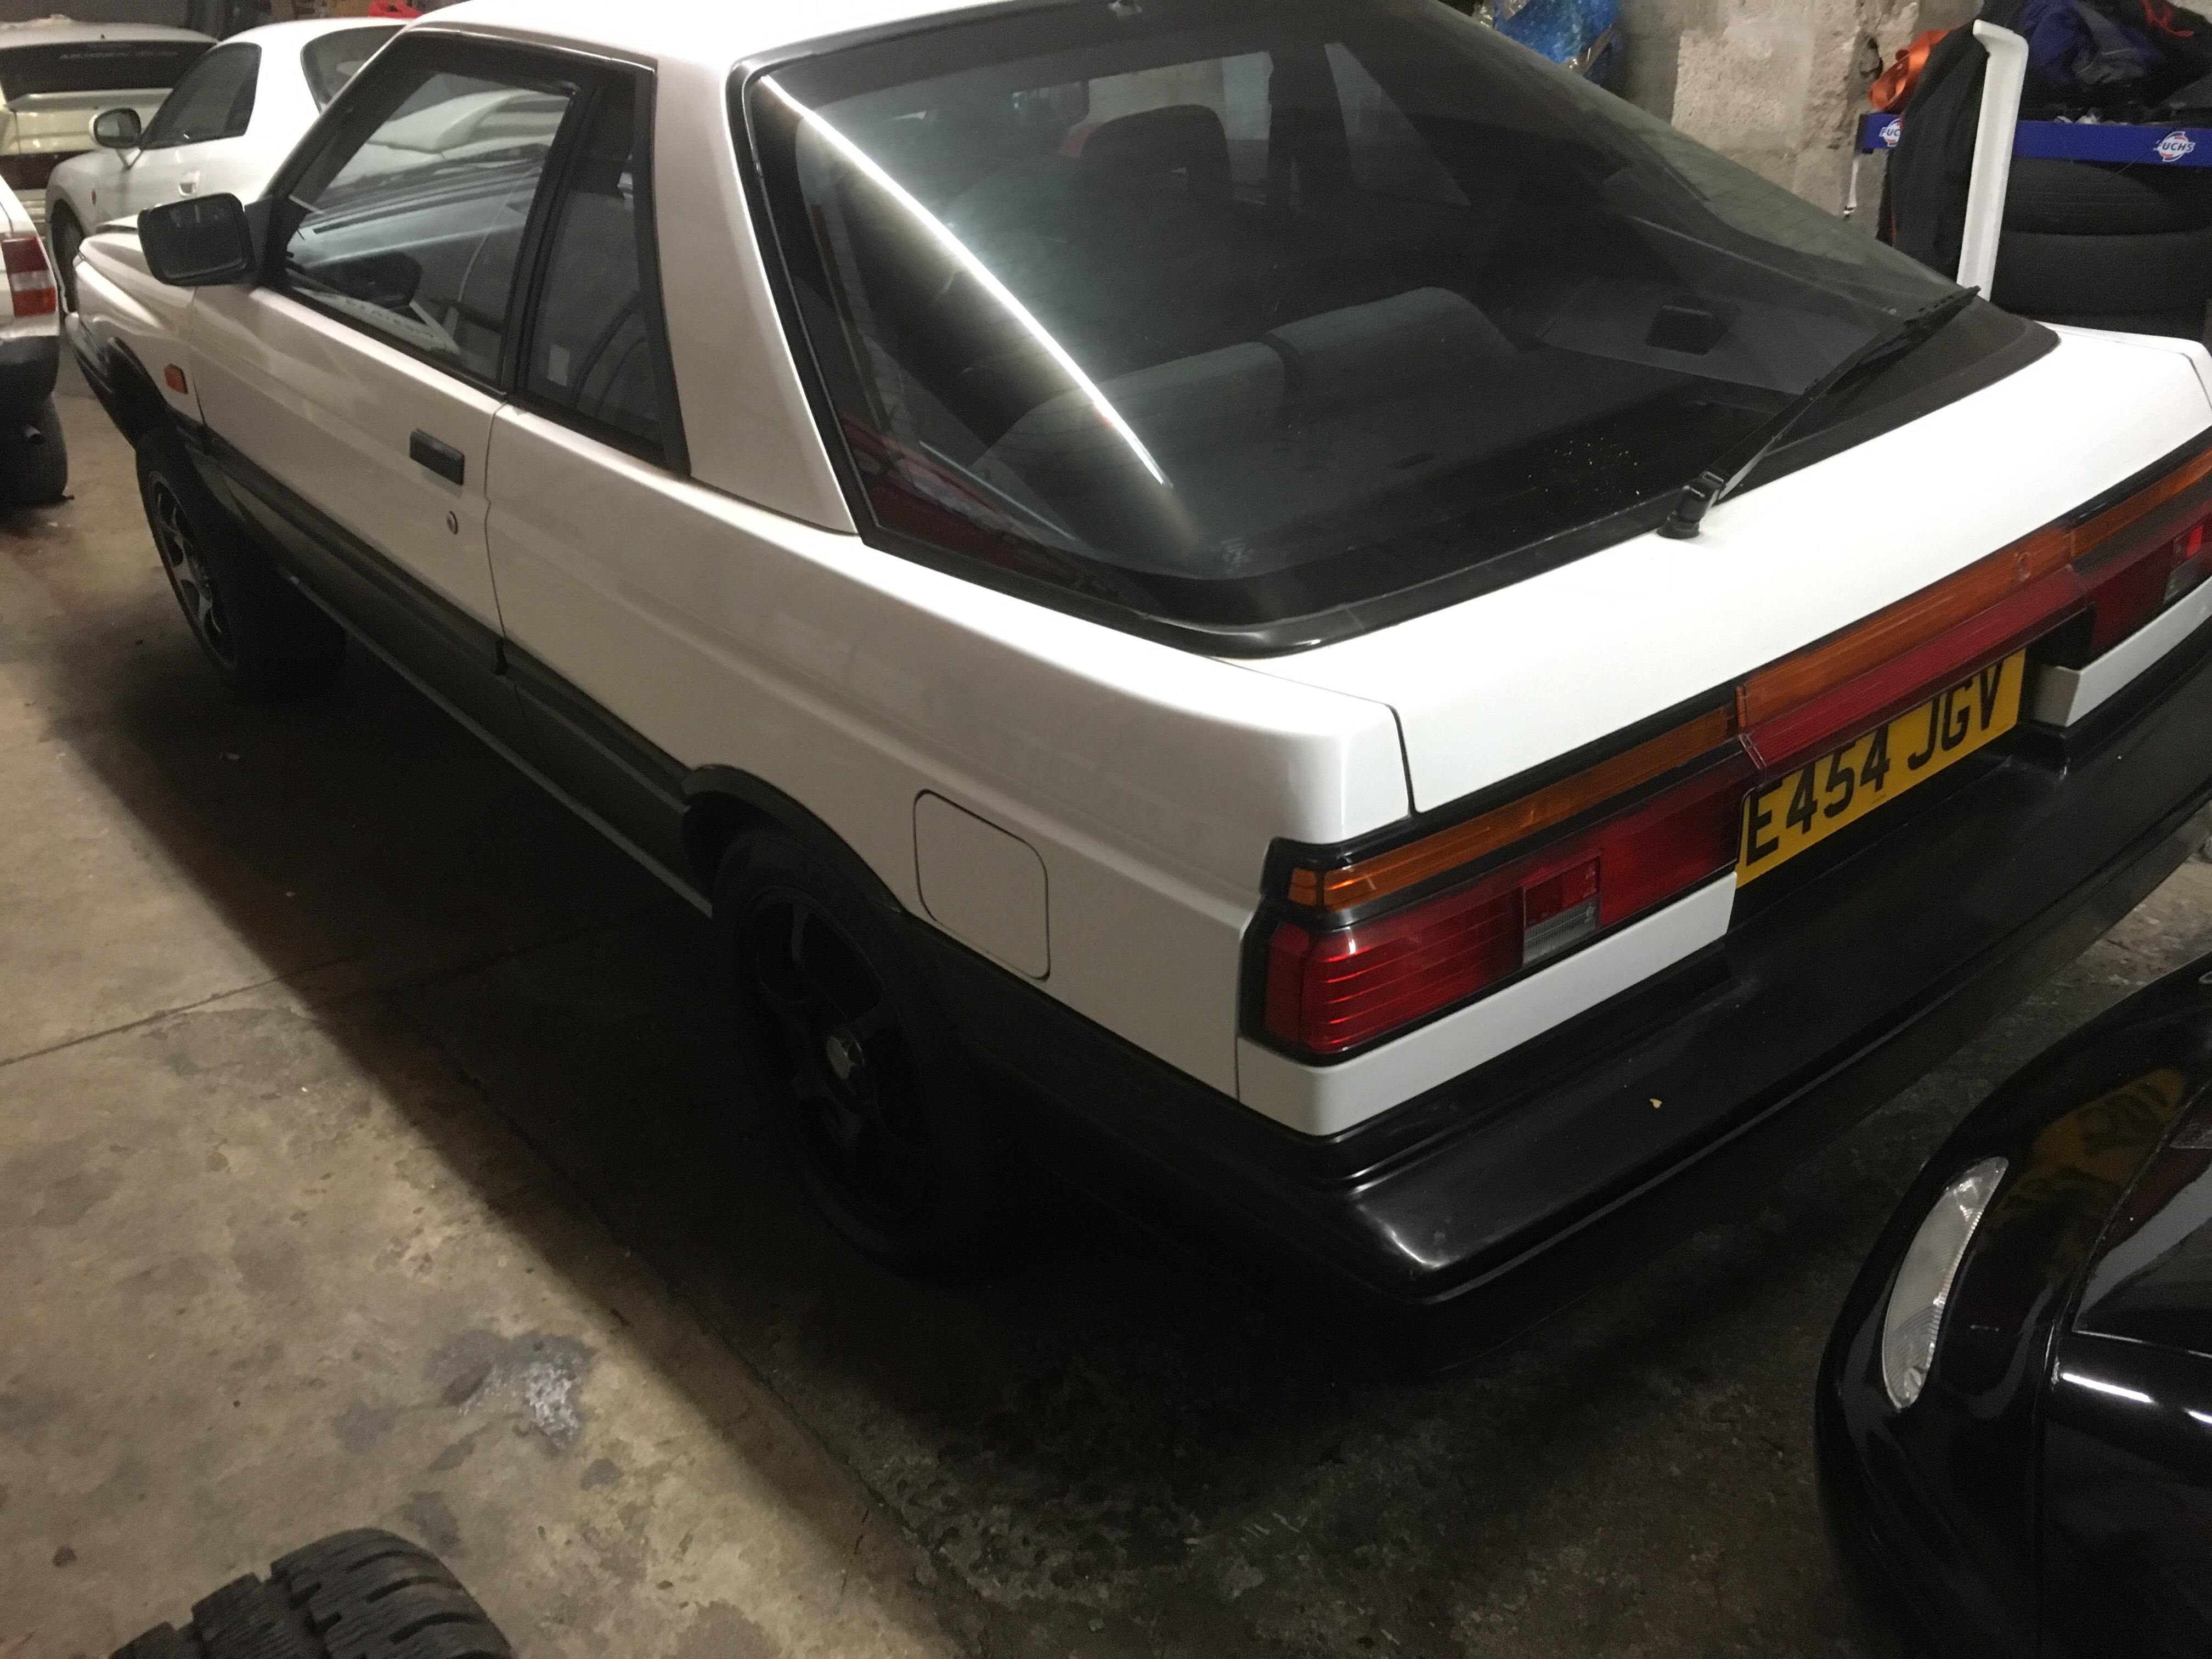 1988 Nissan Sunny Coupe Rz1